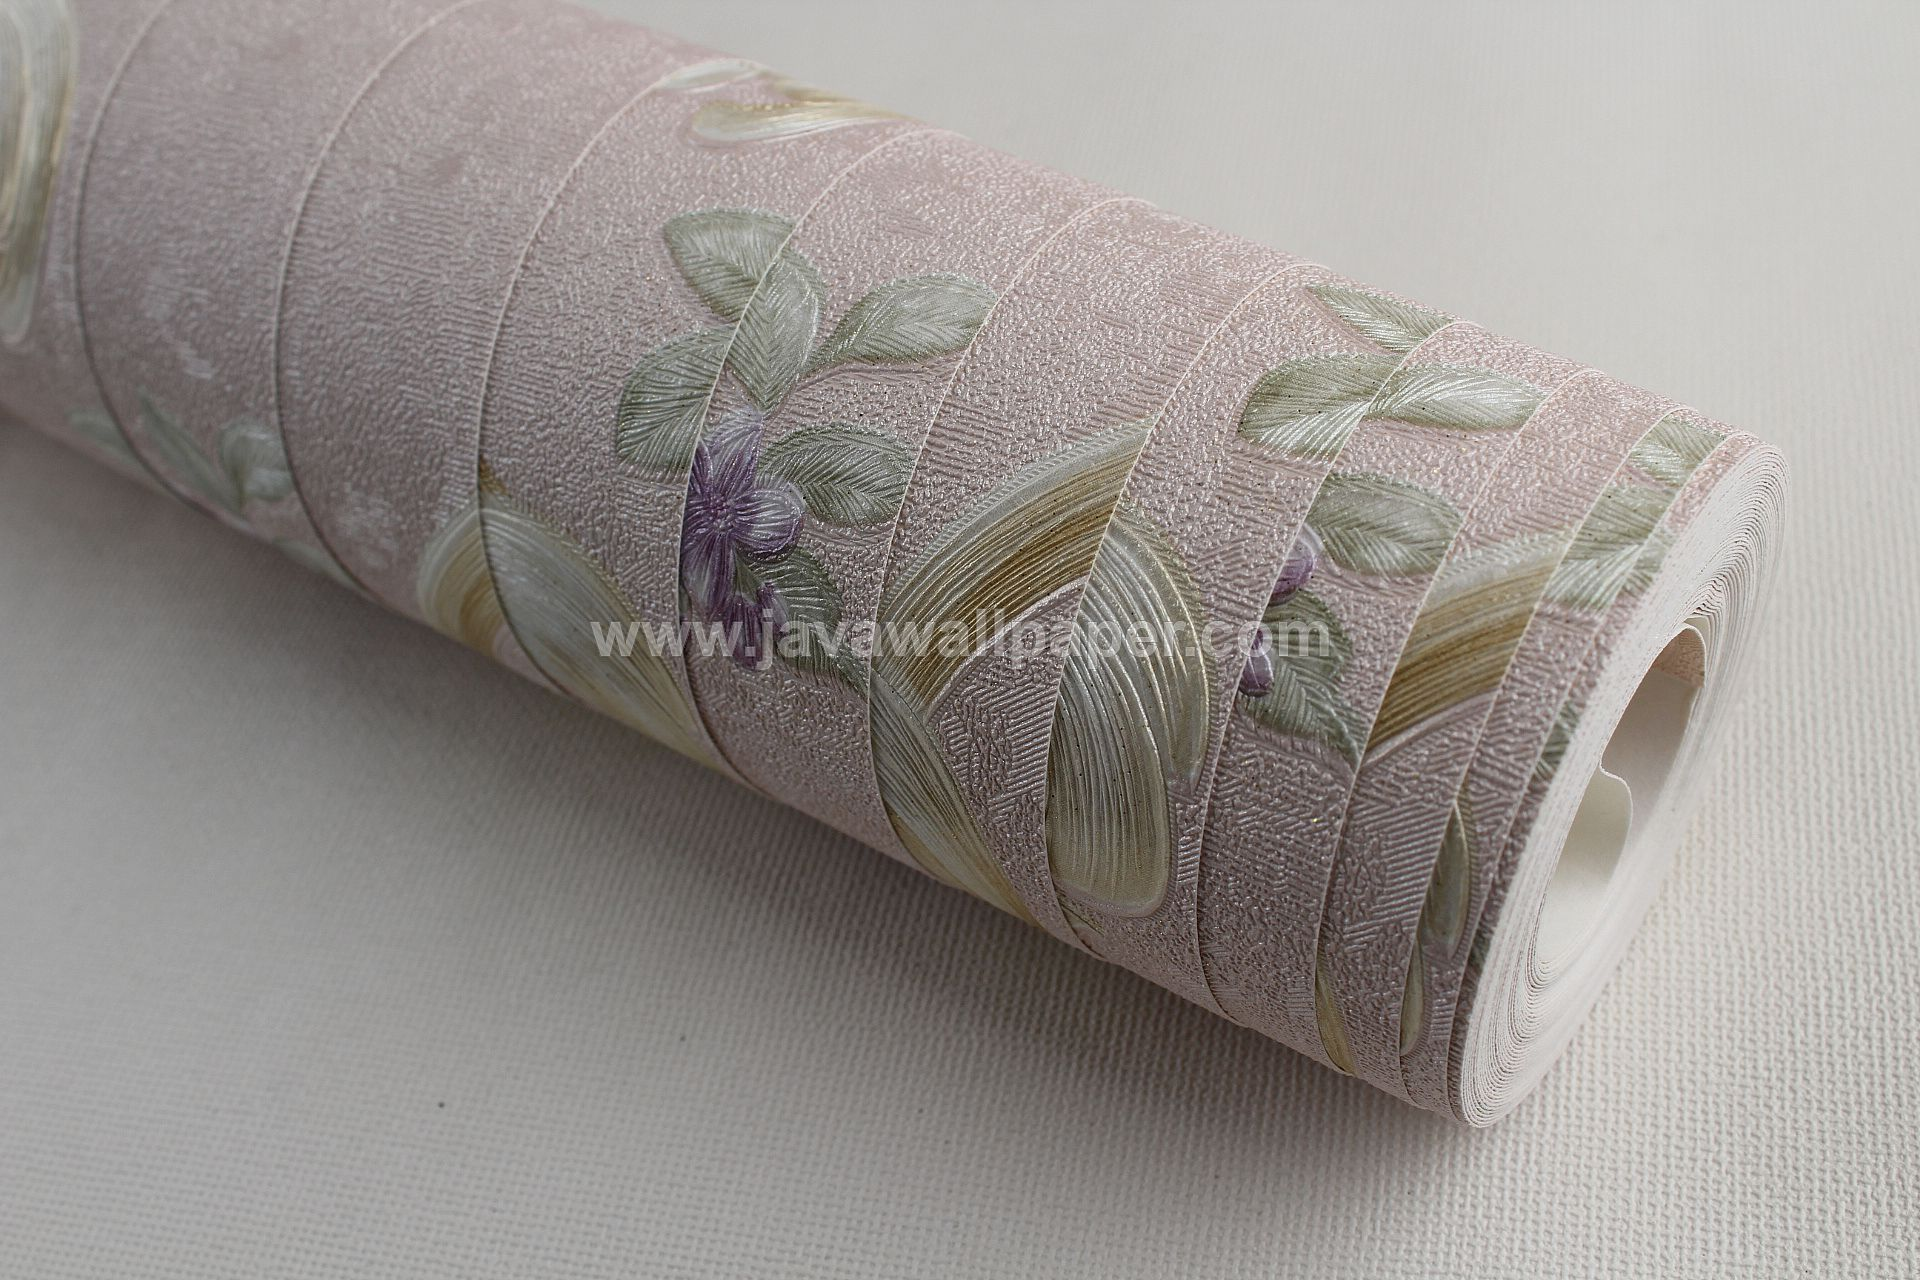 Wallpaper Dinding Bunga Batik Cream Ungu RO134 - Java Wallpaper